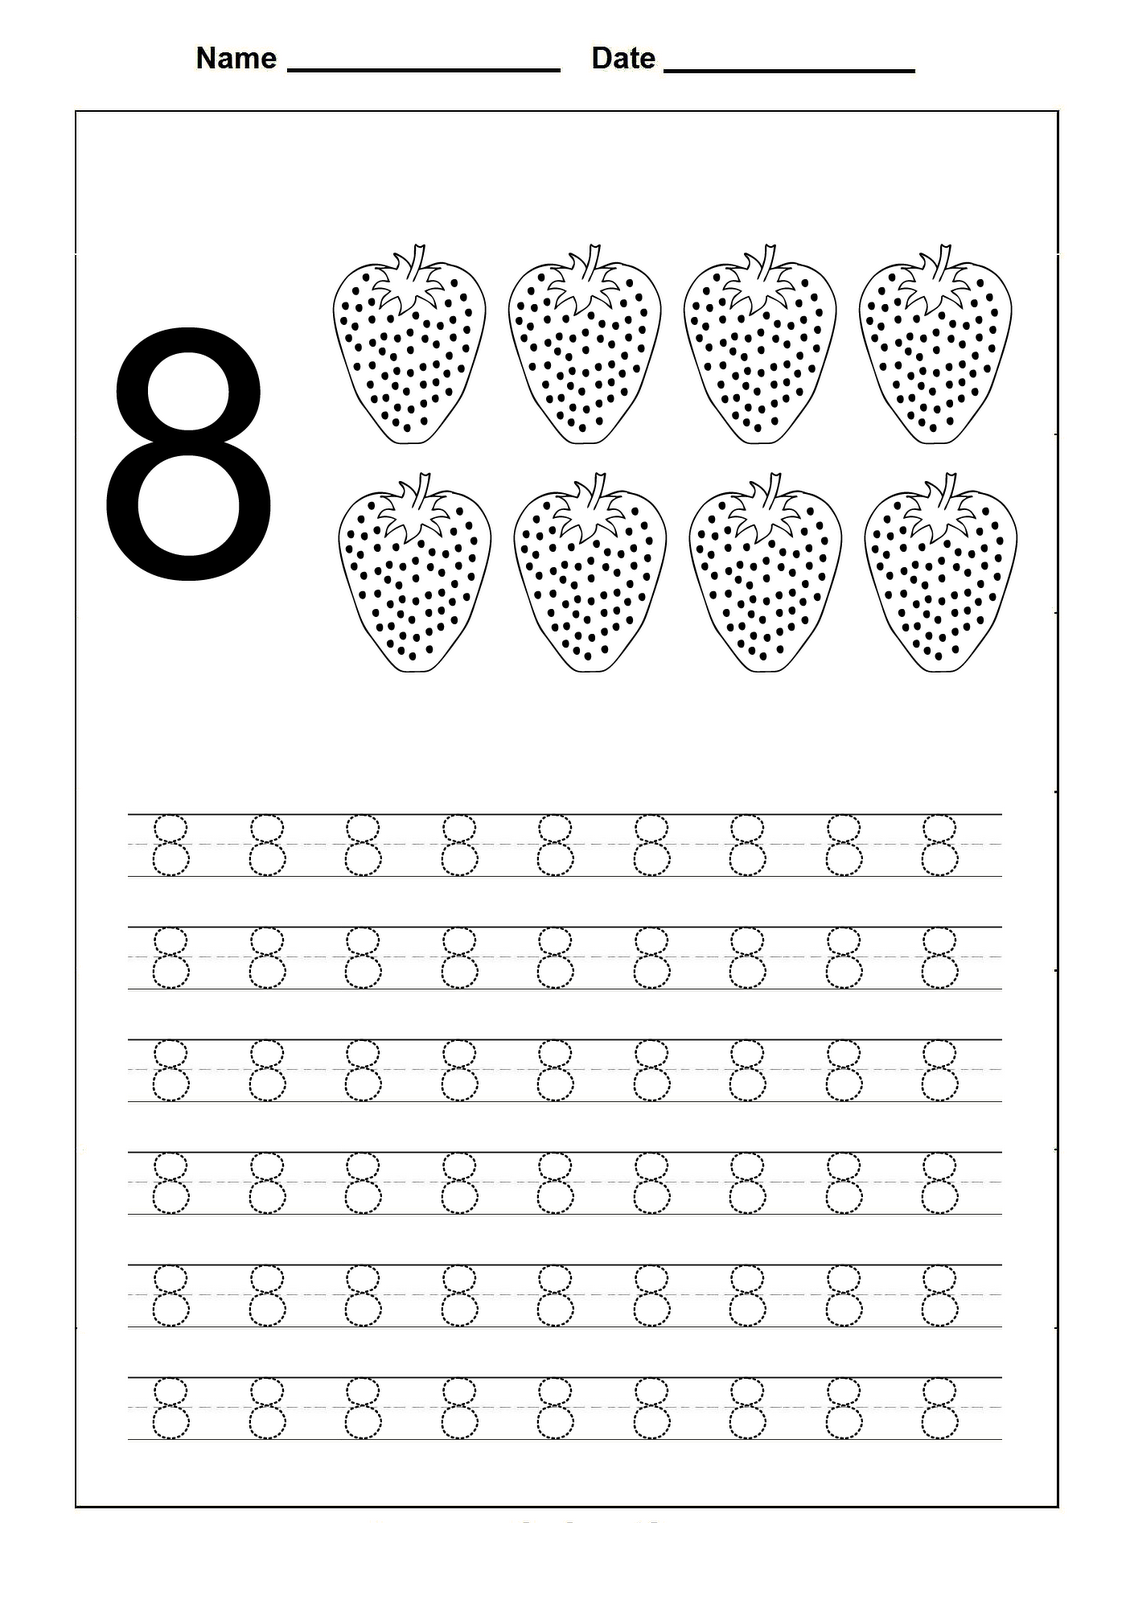 number-8-worksheets-for-practice